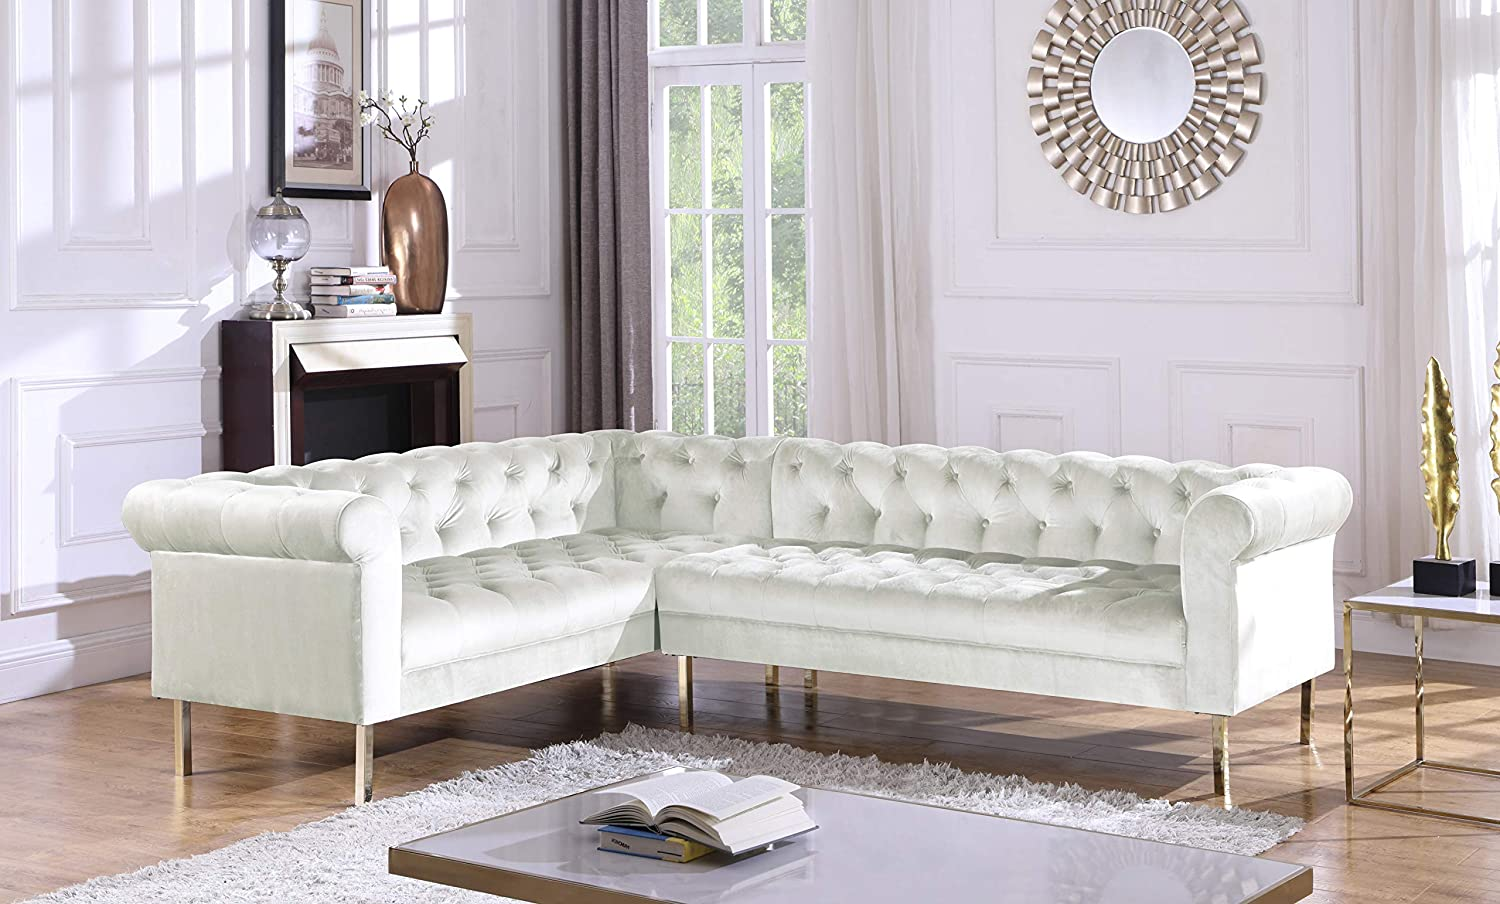 Iconic Home Giovanni Left Facing Sectional Sofa L Shape Velvet Upholstered Button Tufted Roll Arm Design Solid Gold Tone Metal Legs Modern Transitional Beige